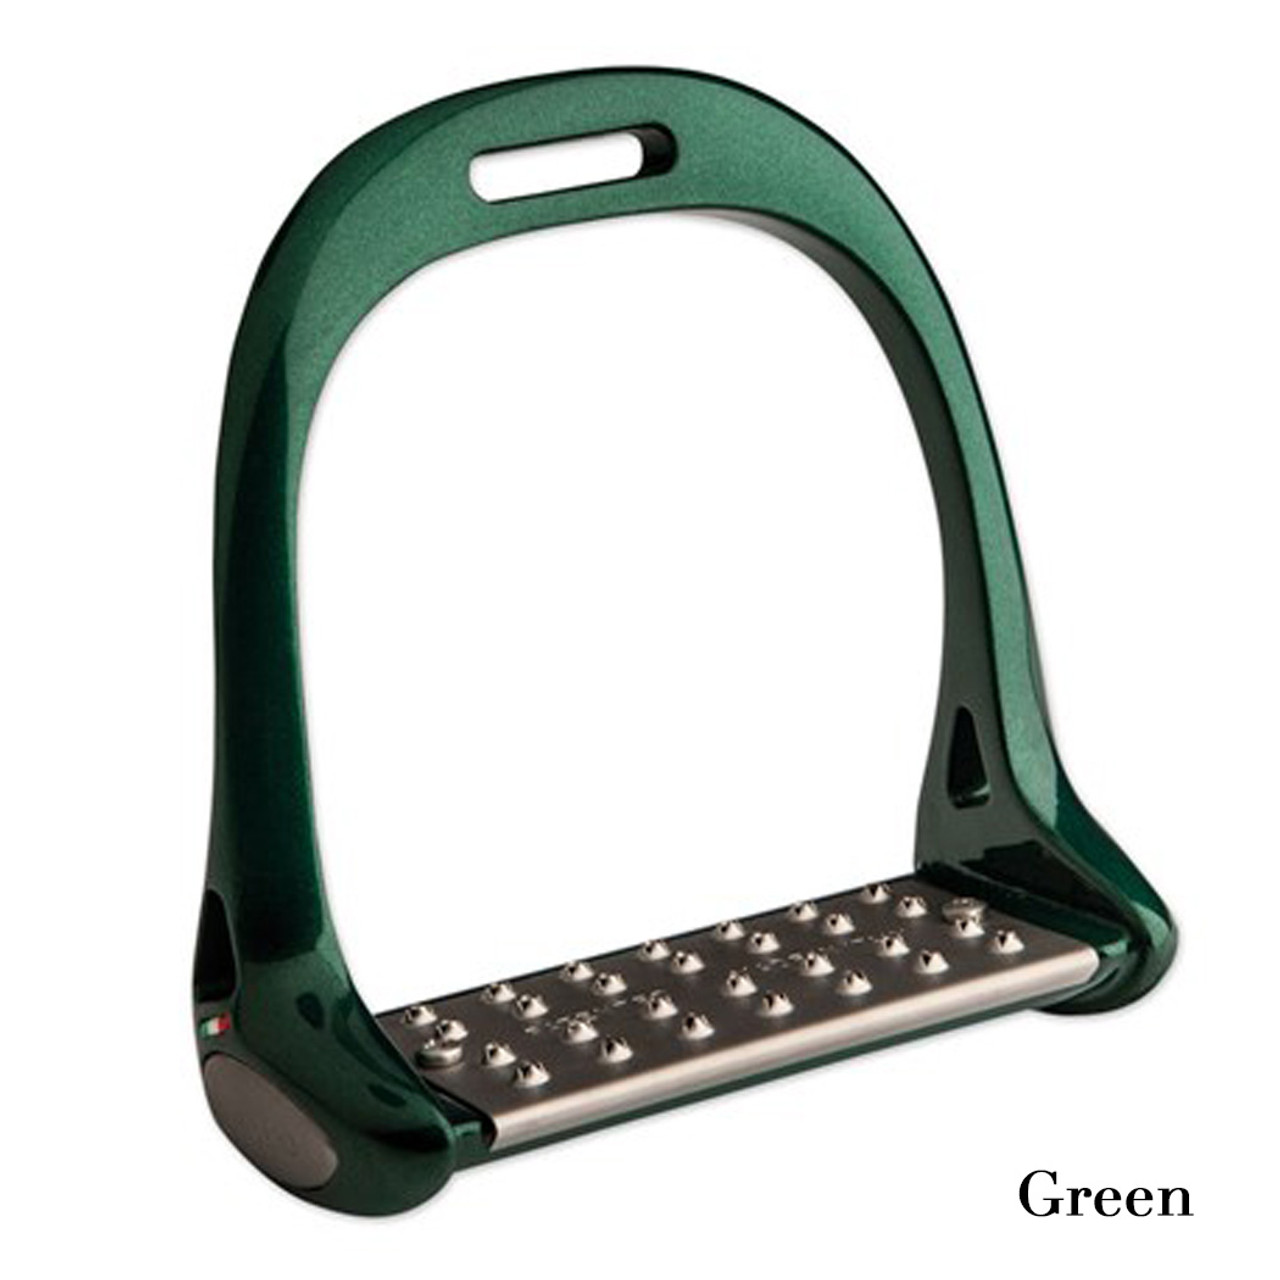 Lorenzini Original Aluminum/Titanium Stirrups - All Colors